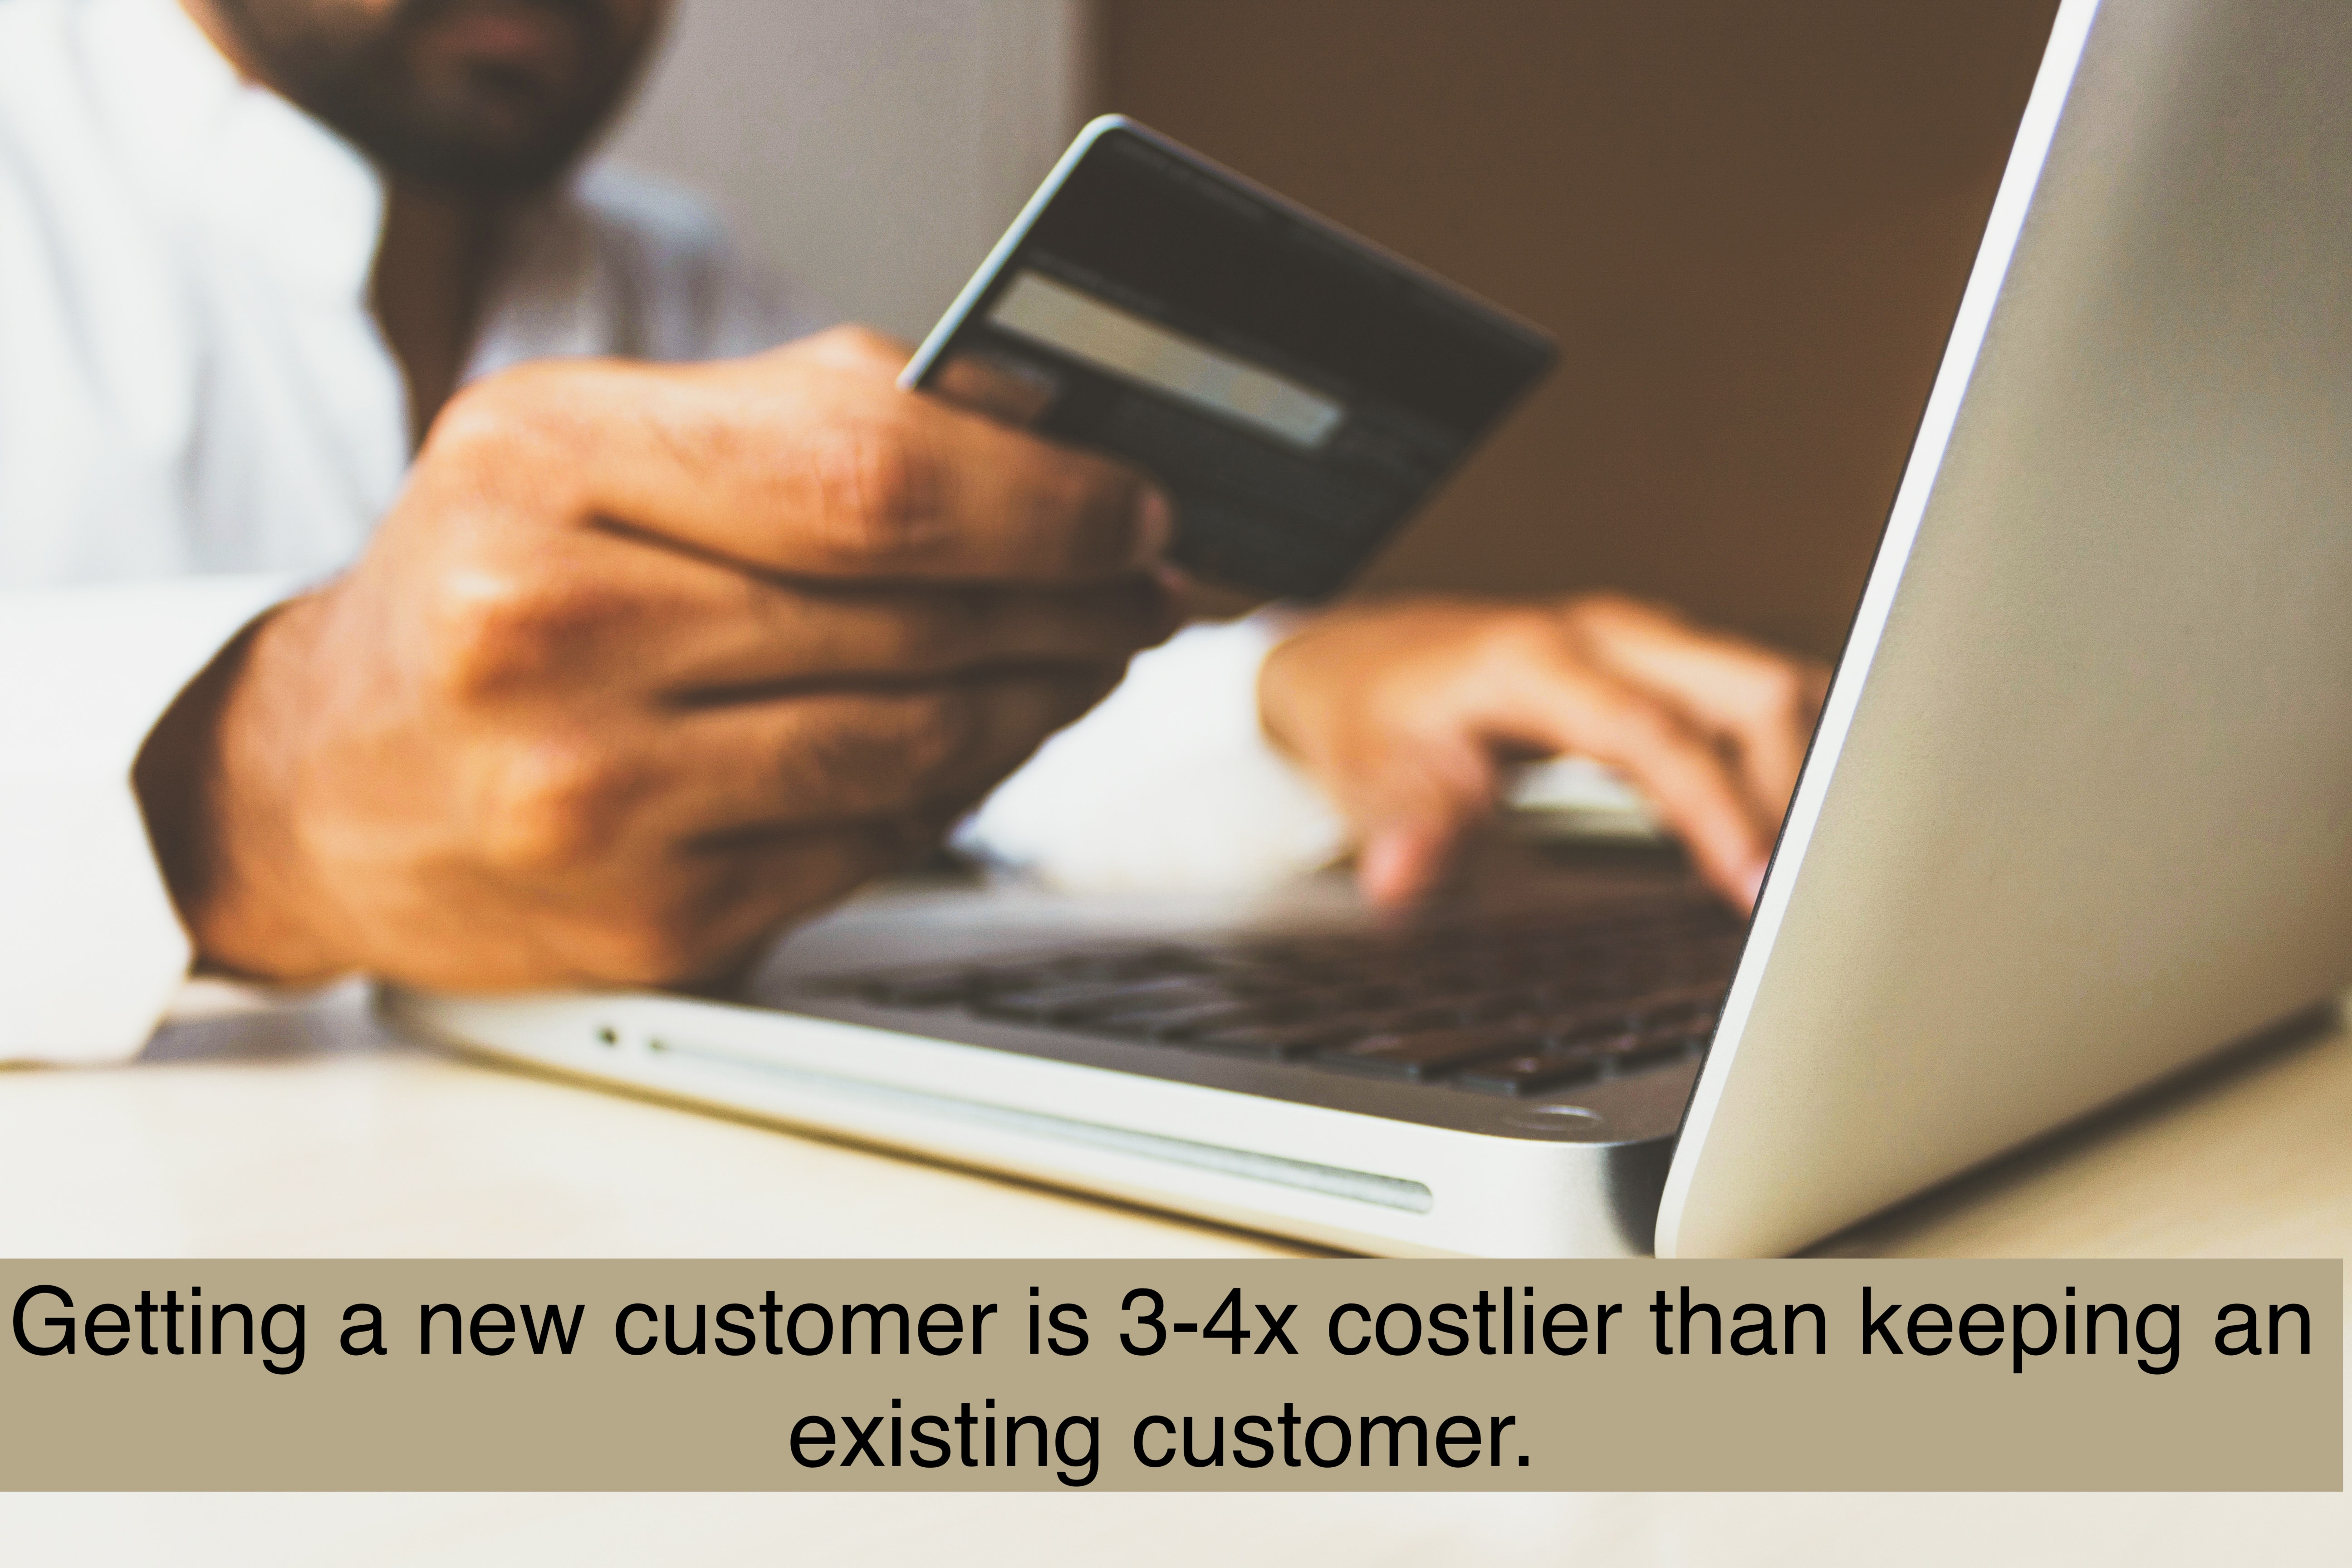 Getting a new customer is 3-4x costlier than keeping an existing customer.